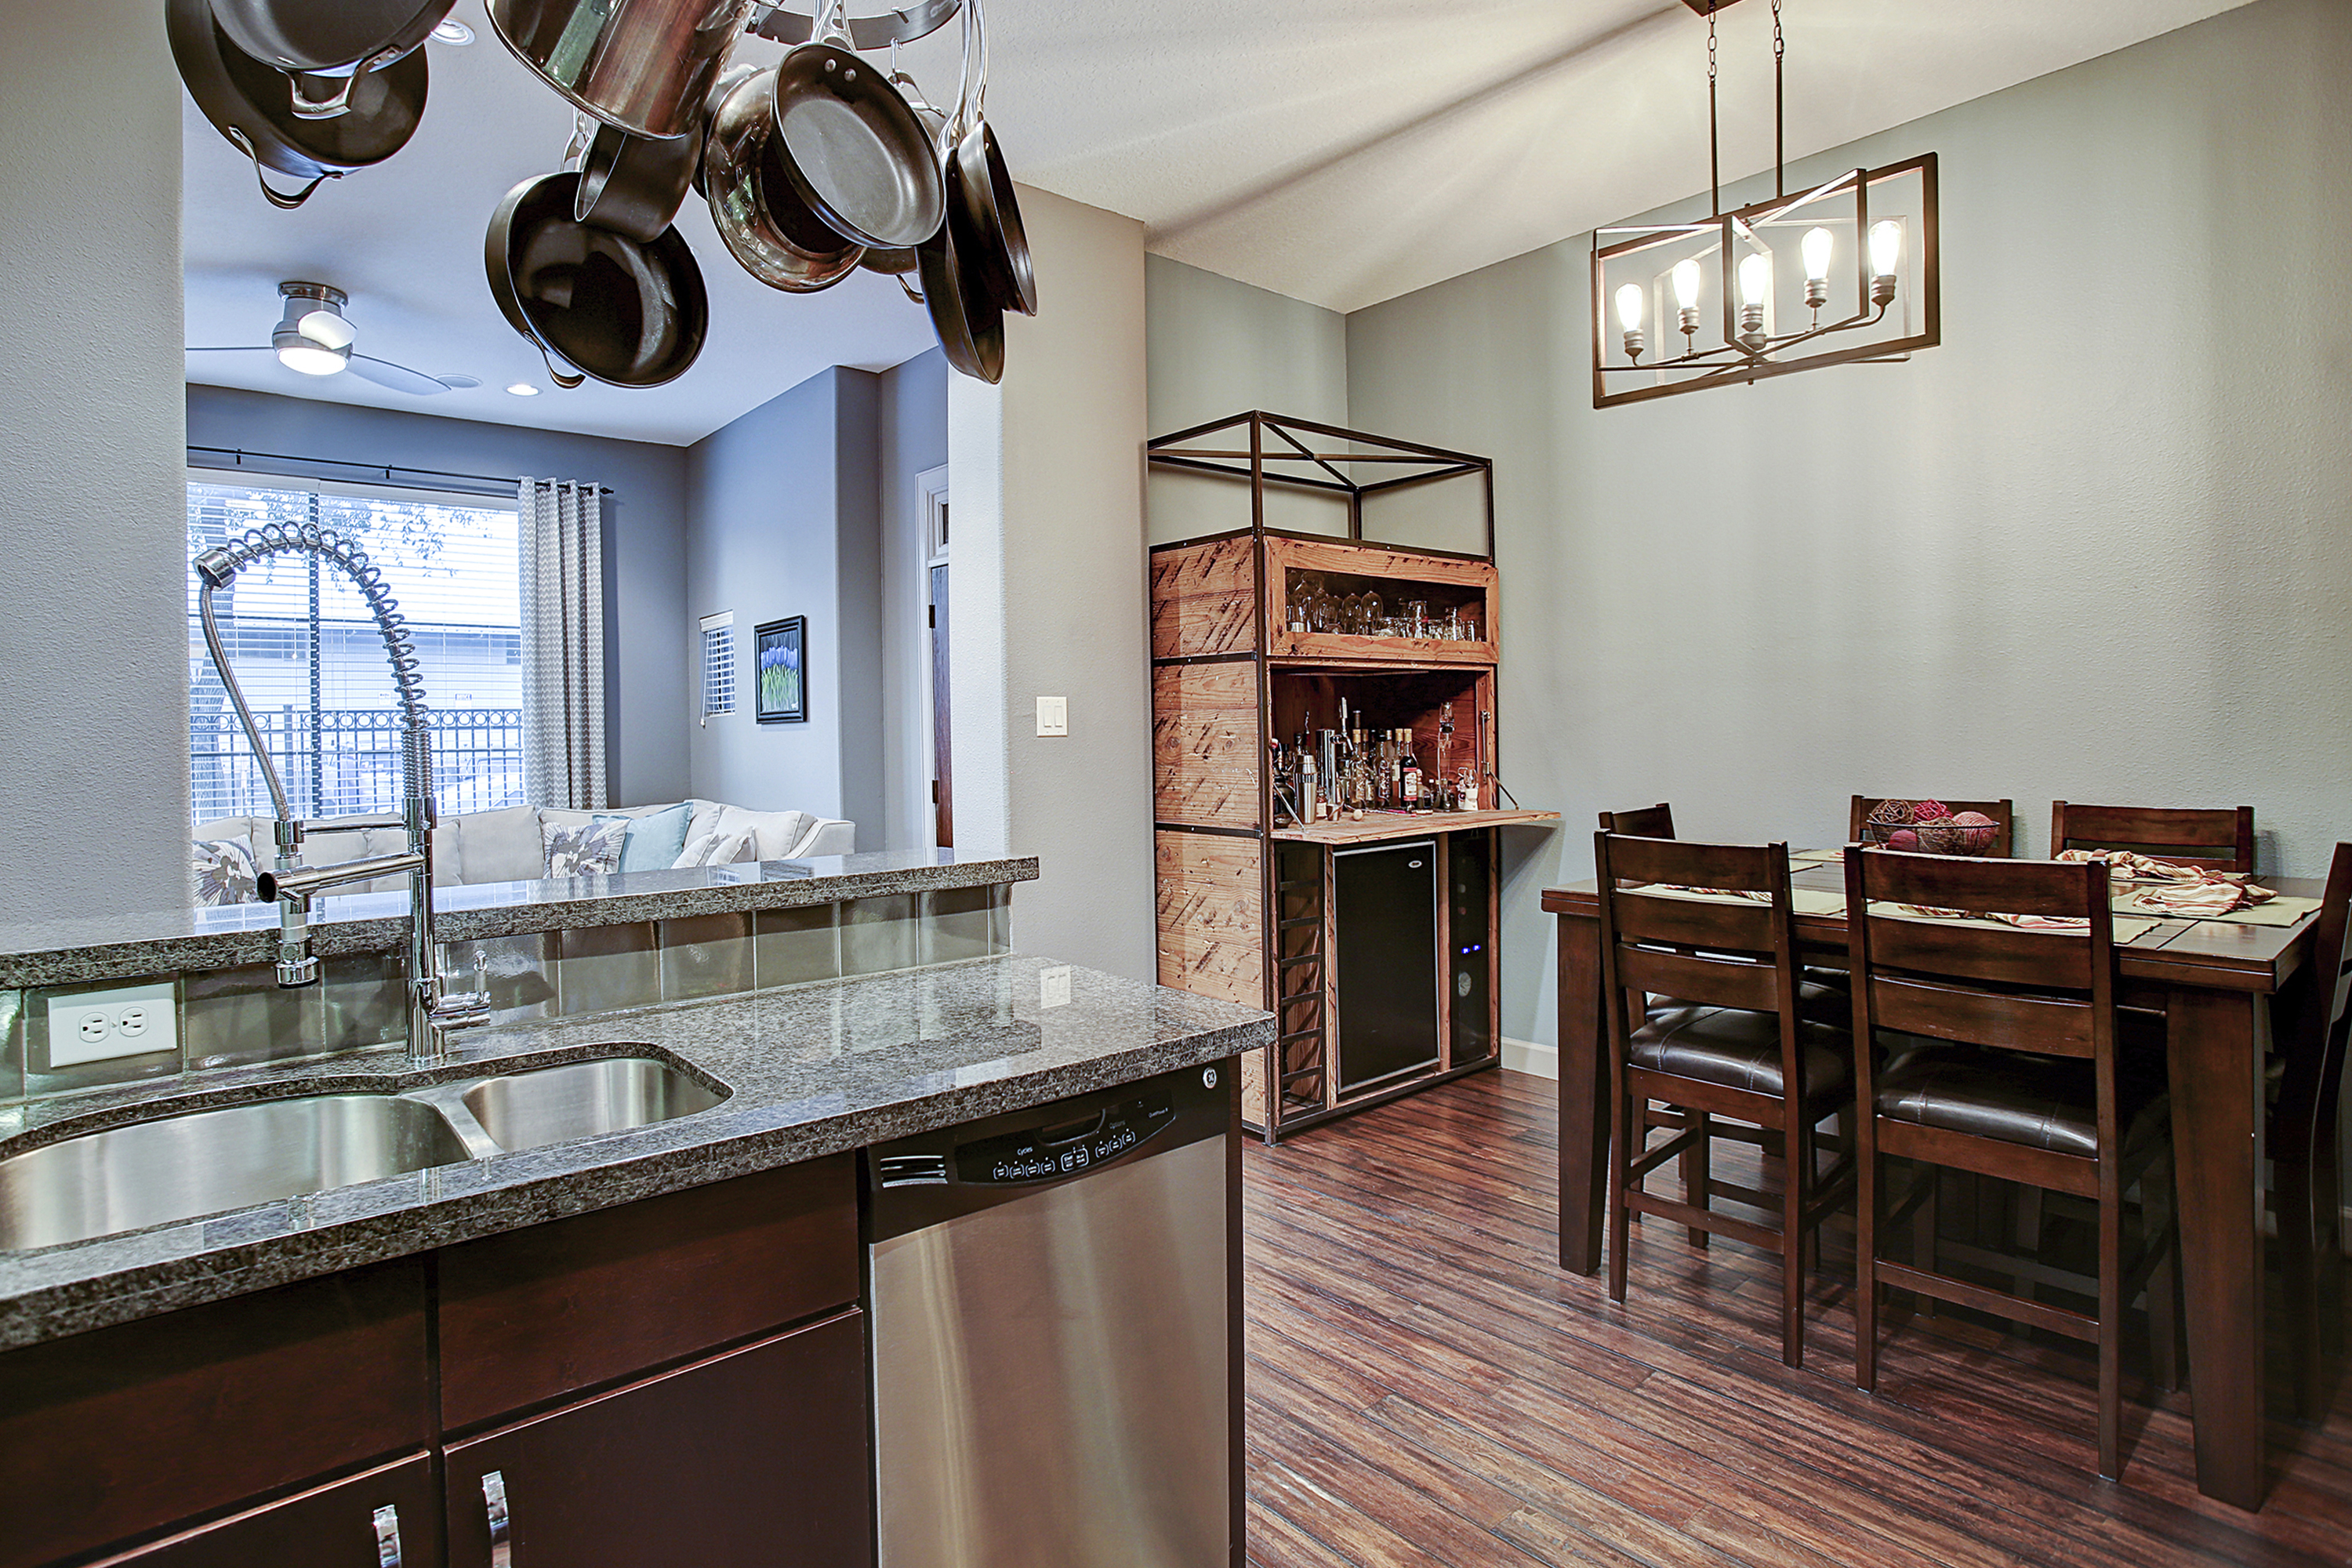 2504 Rusk - Kitchen and Dining